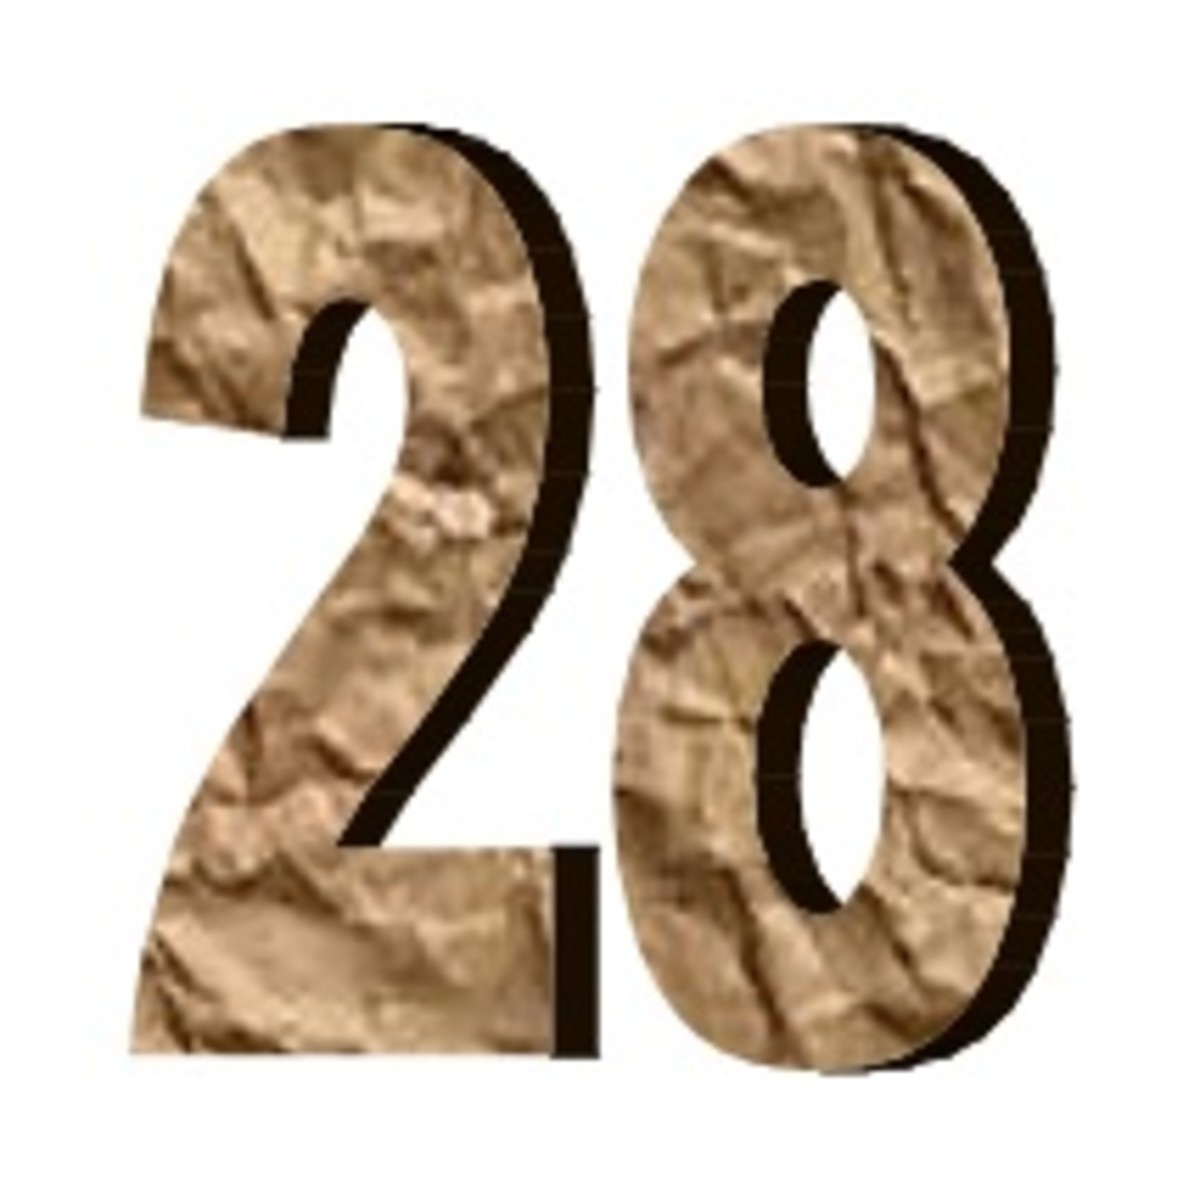 The number 28 (twenty eight). Interesting and fun facts about 28.